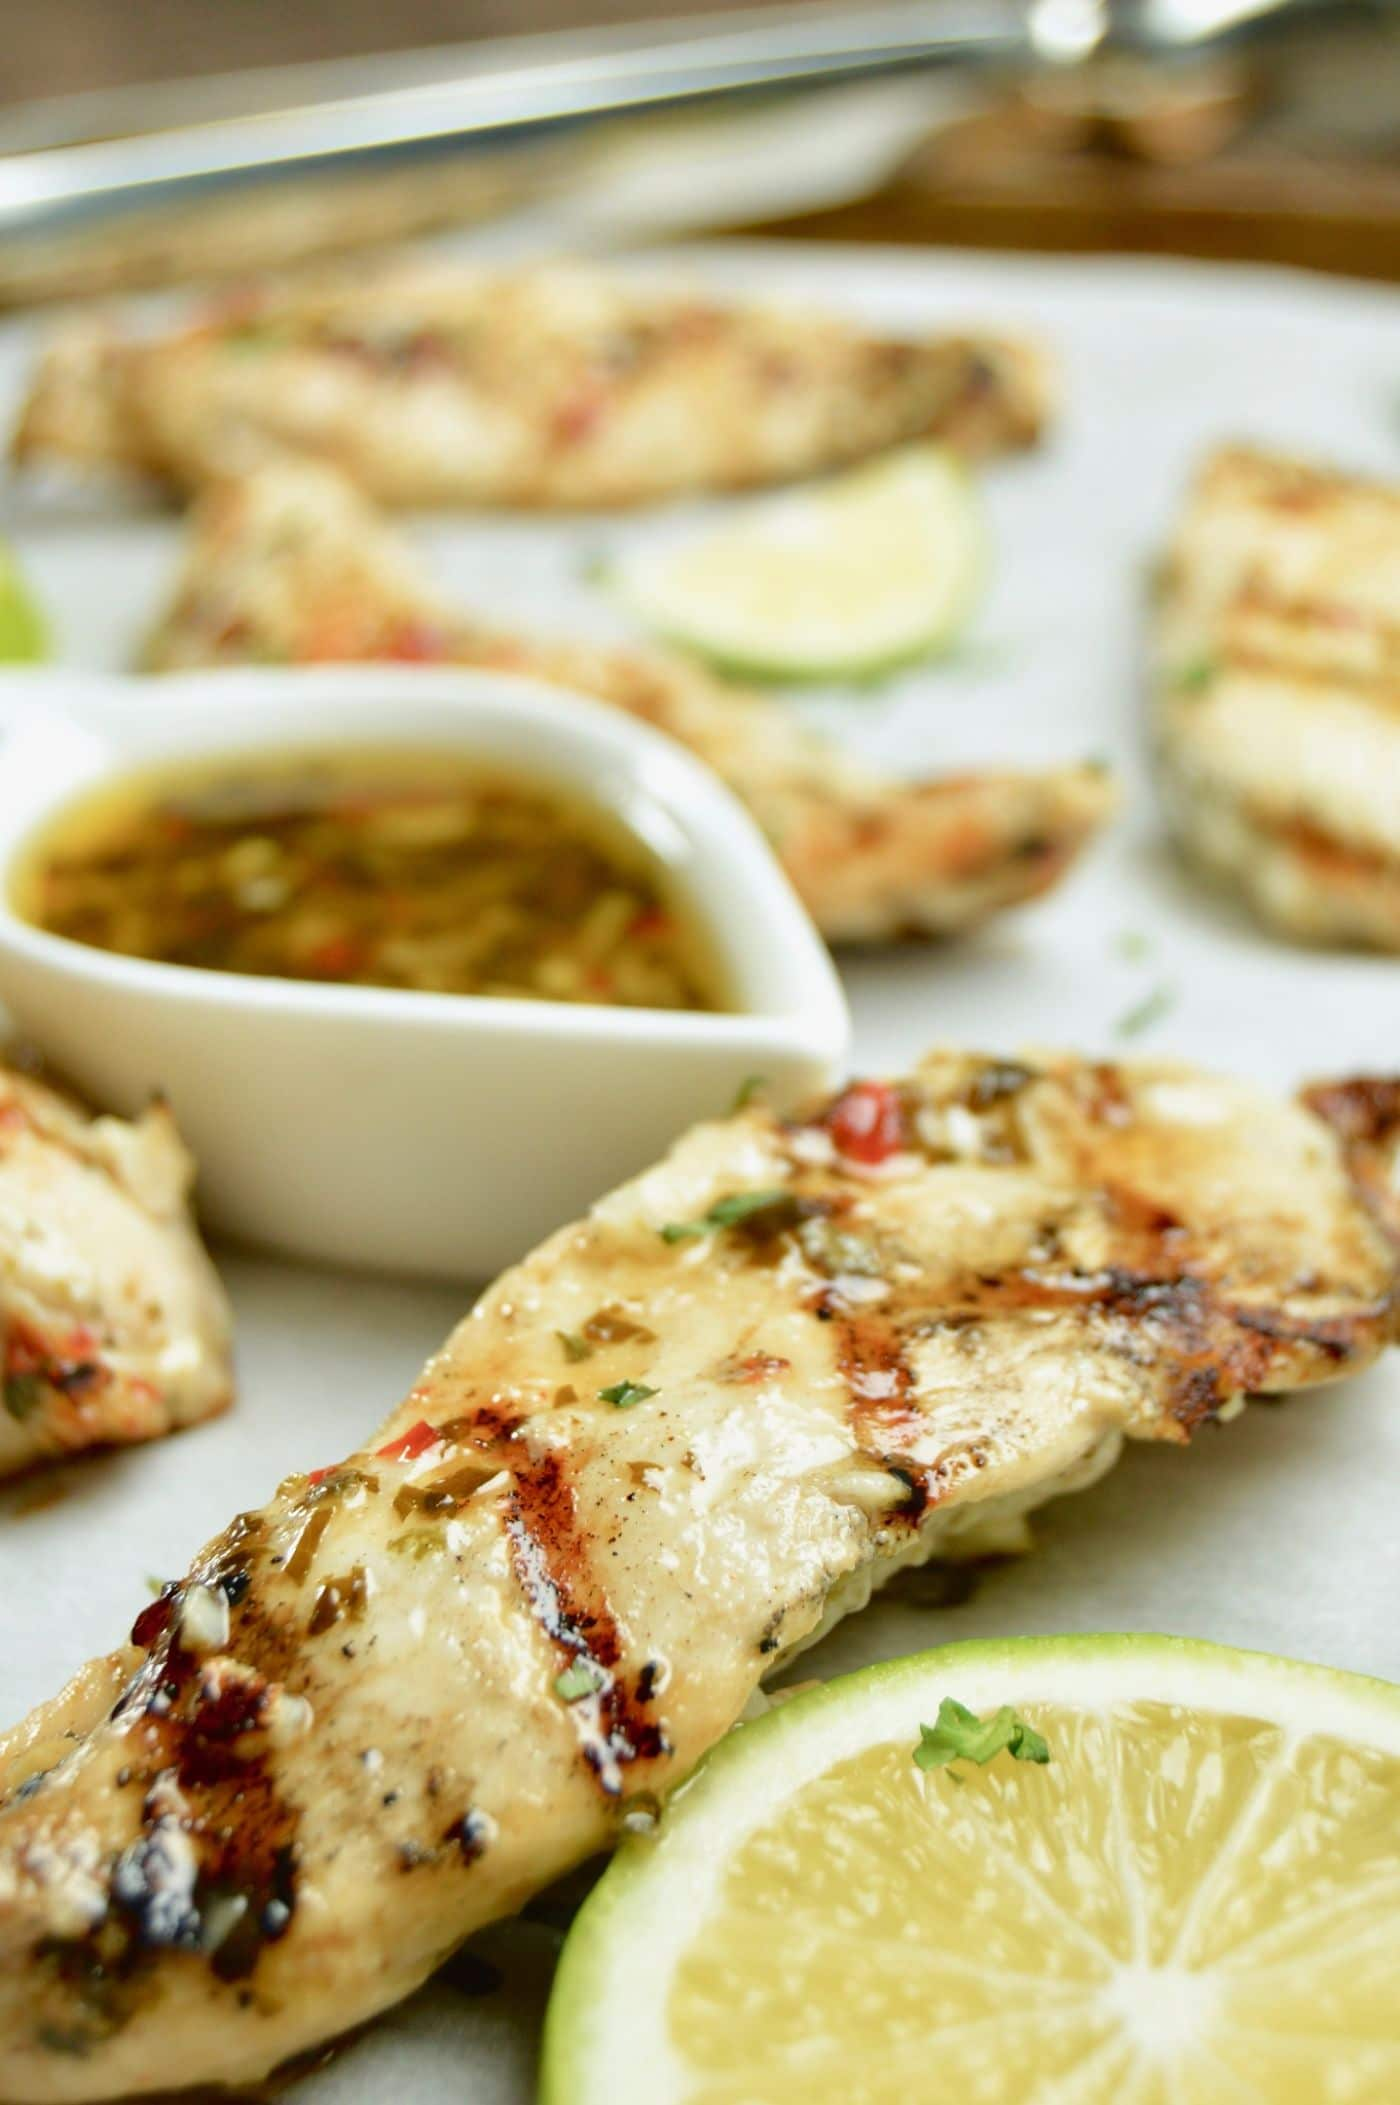 Tray of tender juicy Chili Lime chicken with a sauce to dip into!